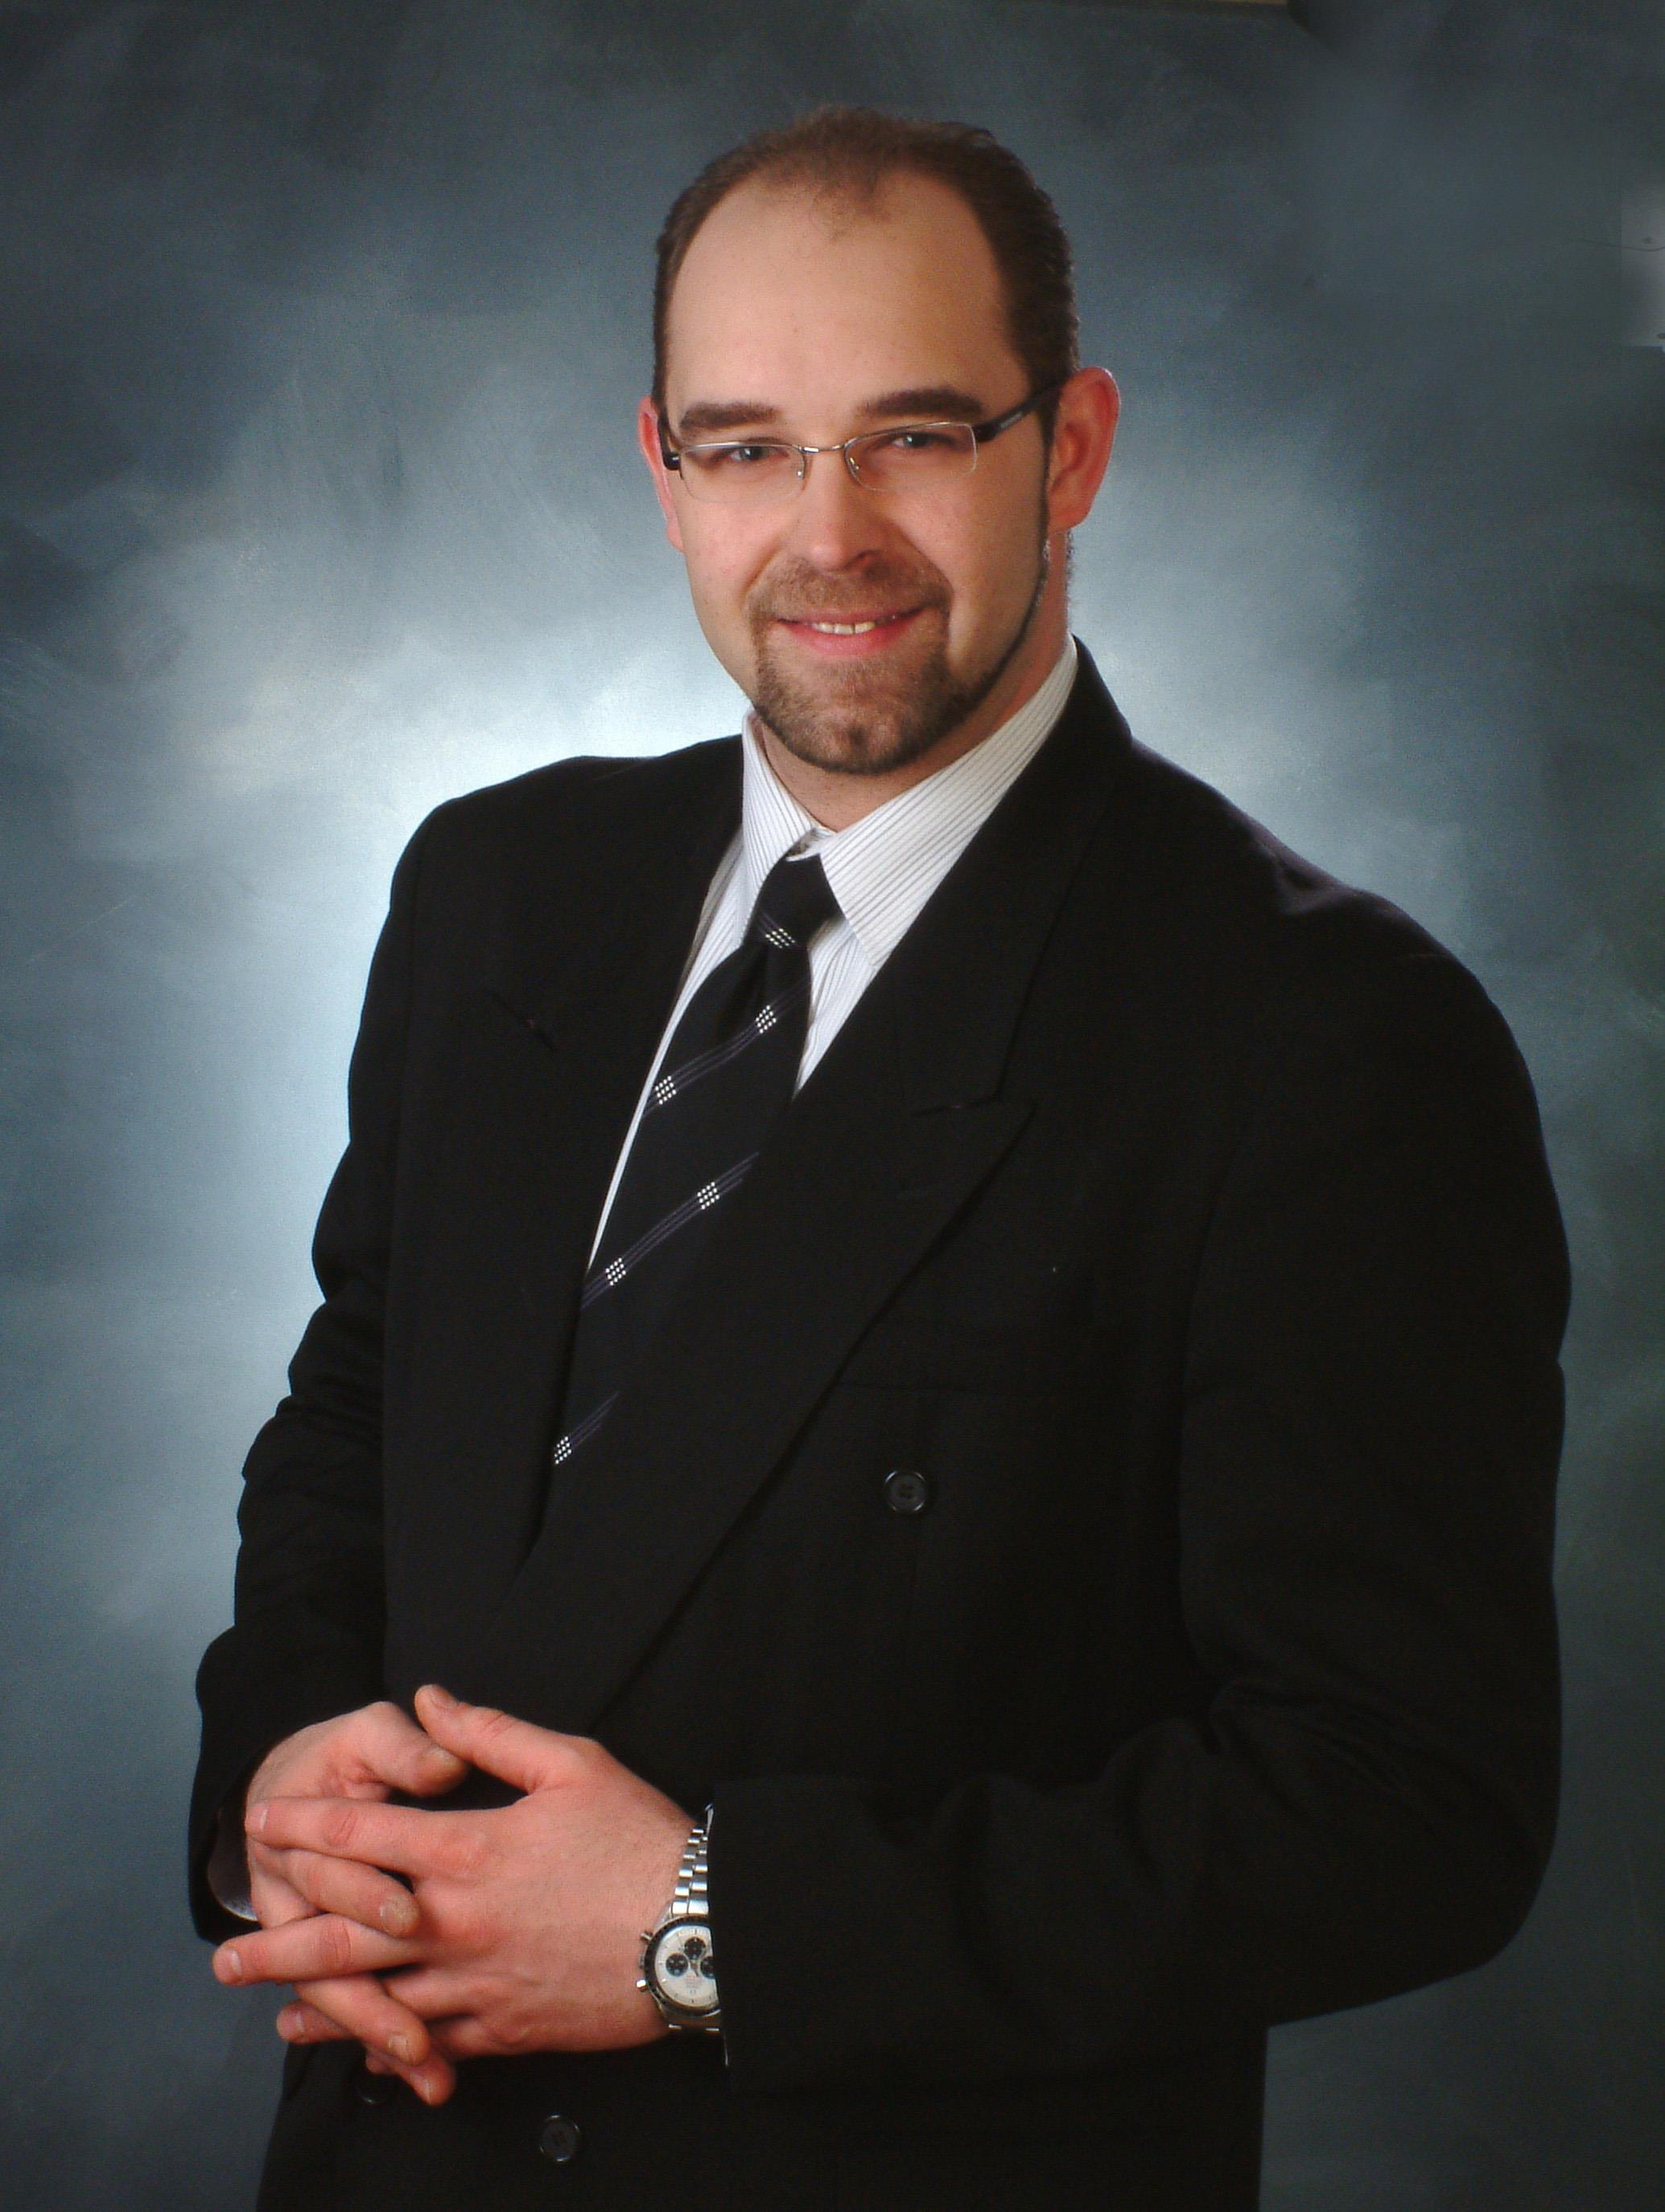 Mark Kusnierz, Royal Lepage Real Estate Agent